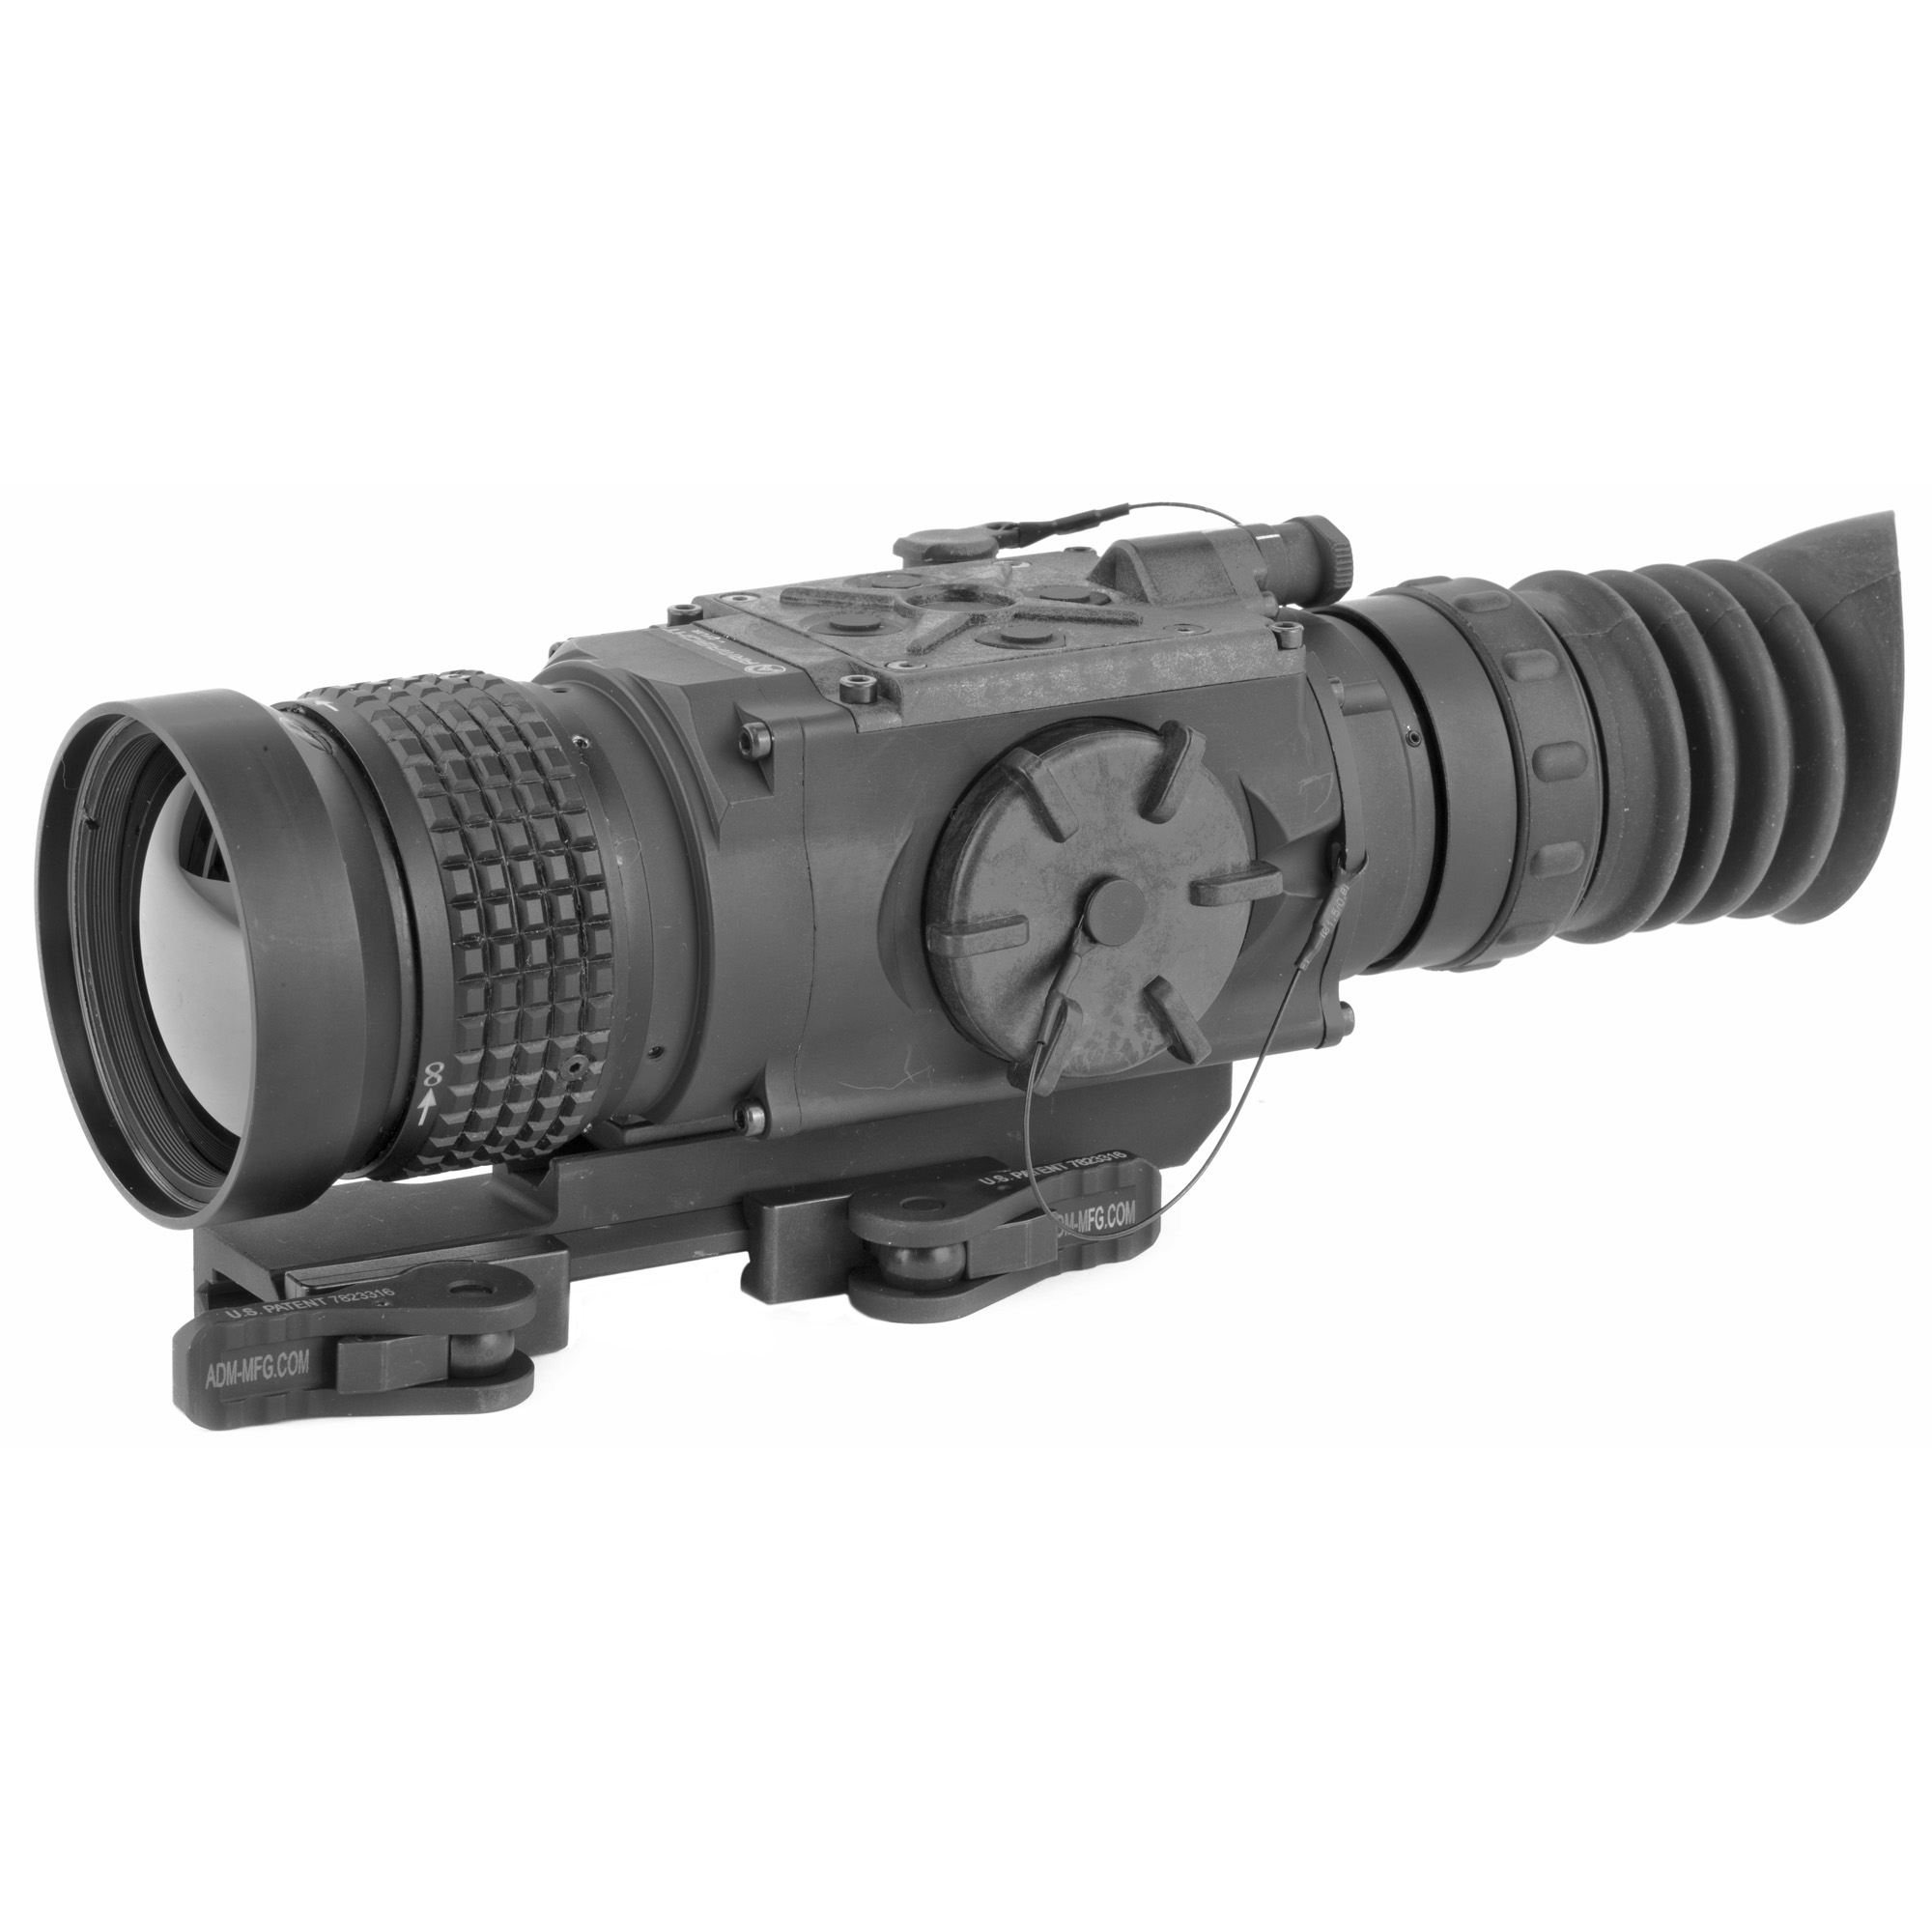 """The FLIR Zeus Pro thermal weapon sight offers a digital inclinometer"""" electronic compass"""" and multiple ballistic drop reticles for accuracy on long-range targets. Intuitive controls make range estimation and target orientation simple while onboard algorithms and user-controlled reticle adjustments work in tandem to deliver precise shots on-target"""" day or night."""